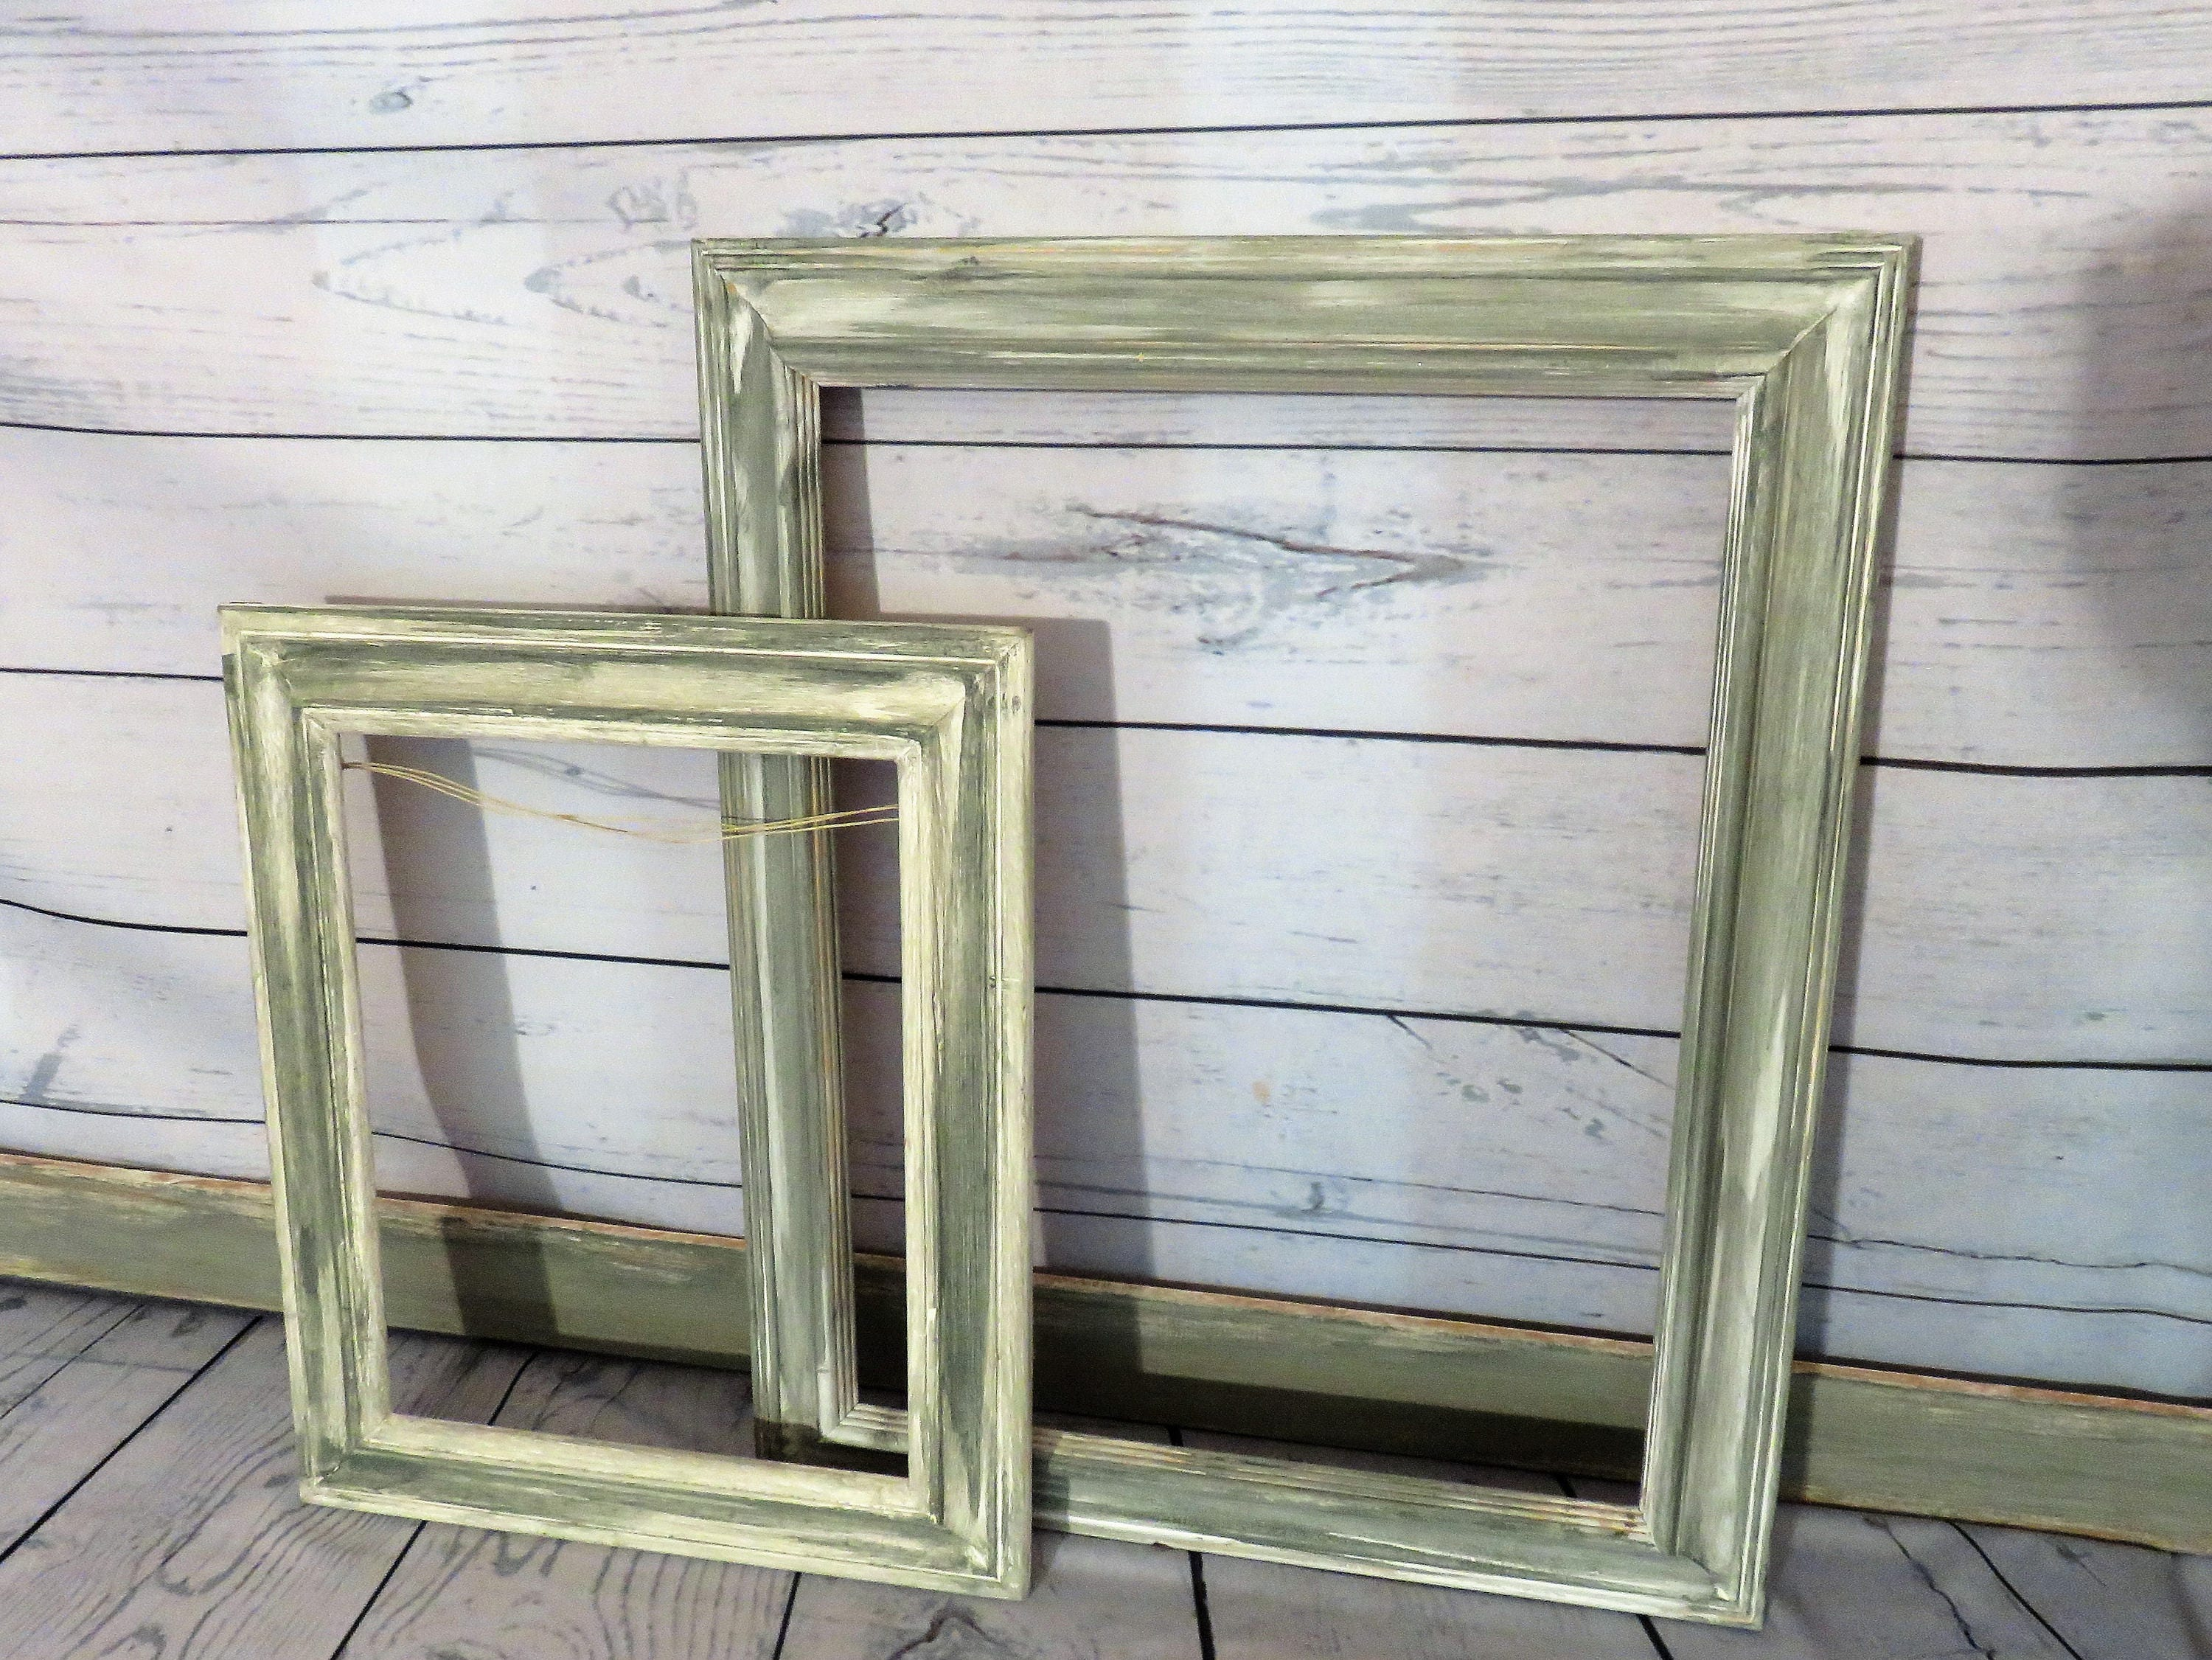 Gallery Frame Set of Two, Distressed Gray, White Wooden Picture ...